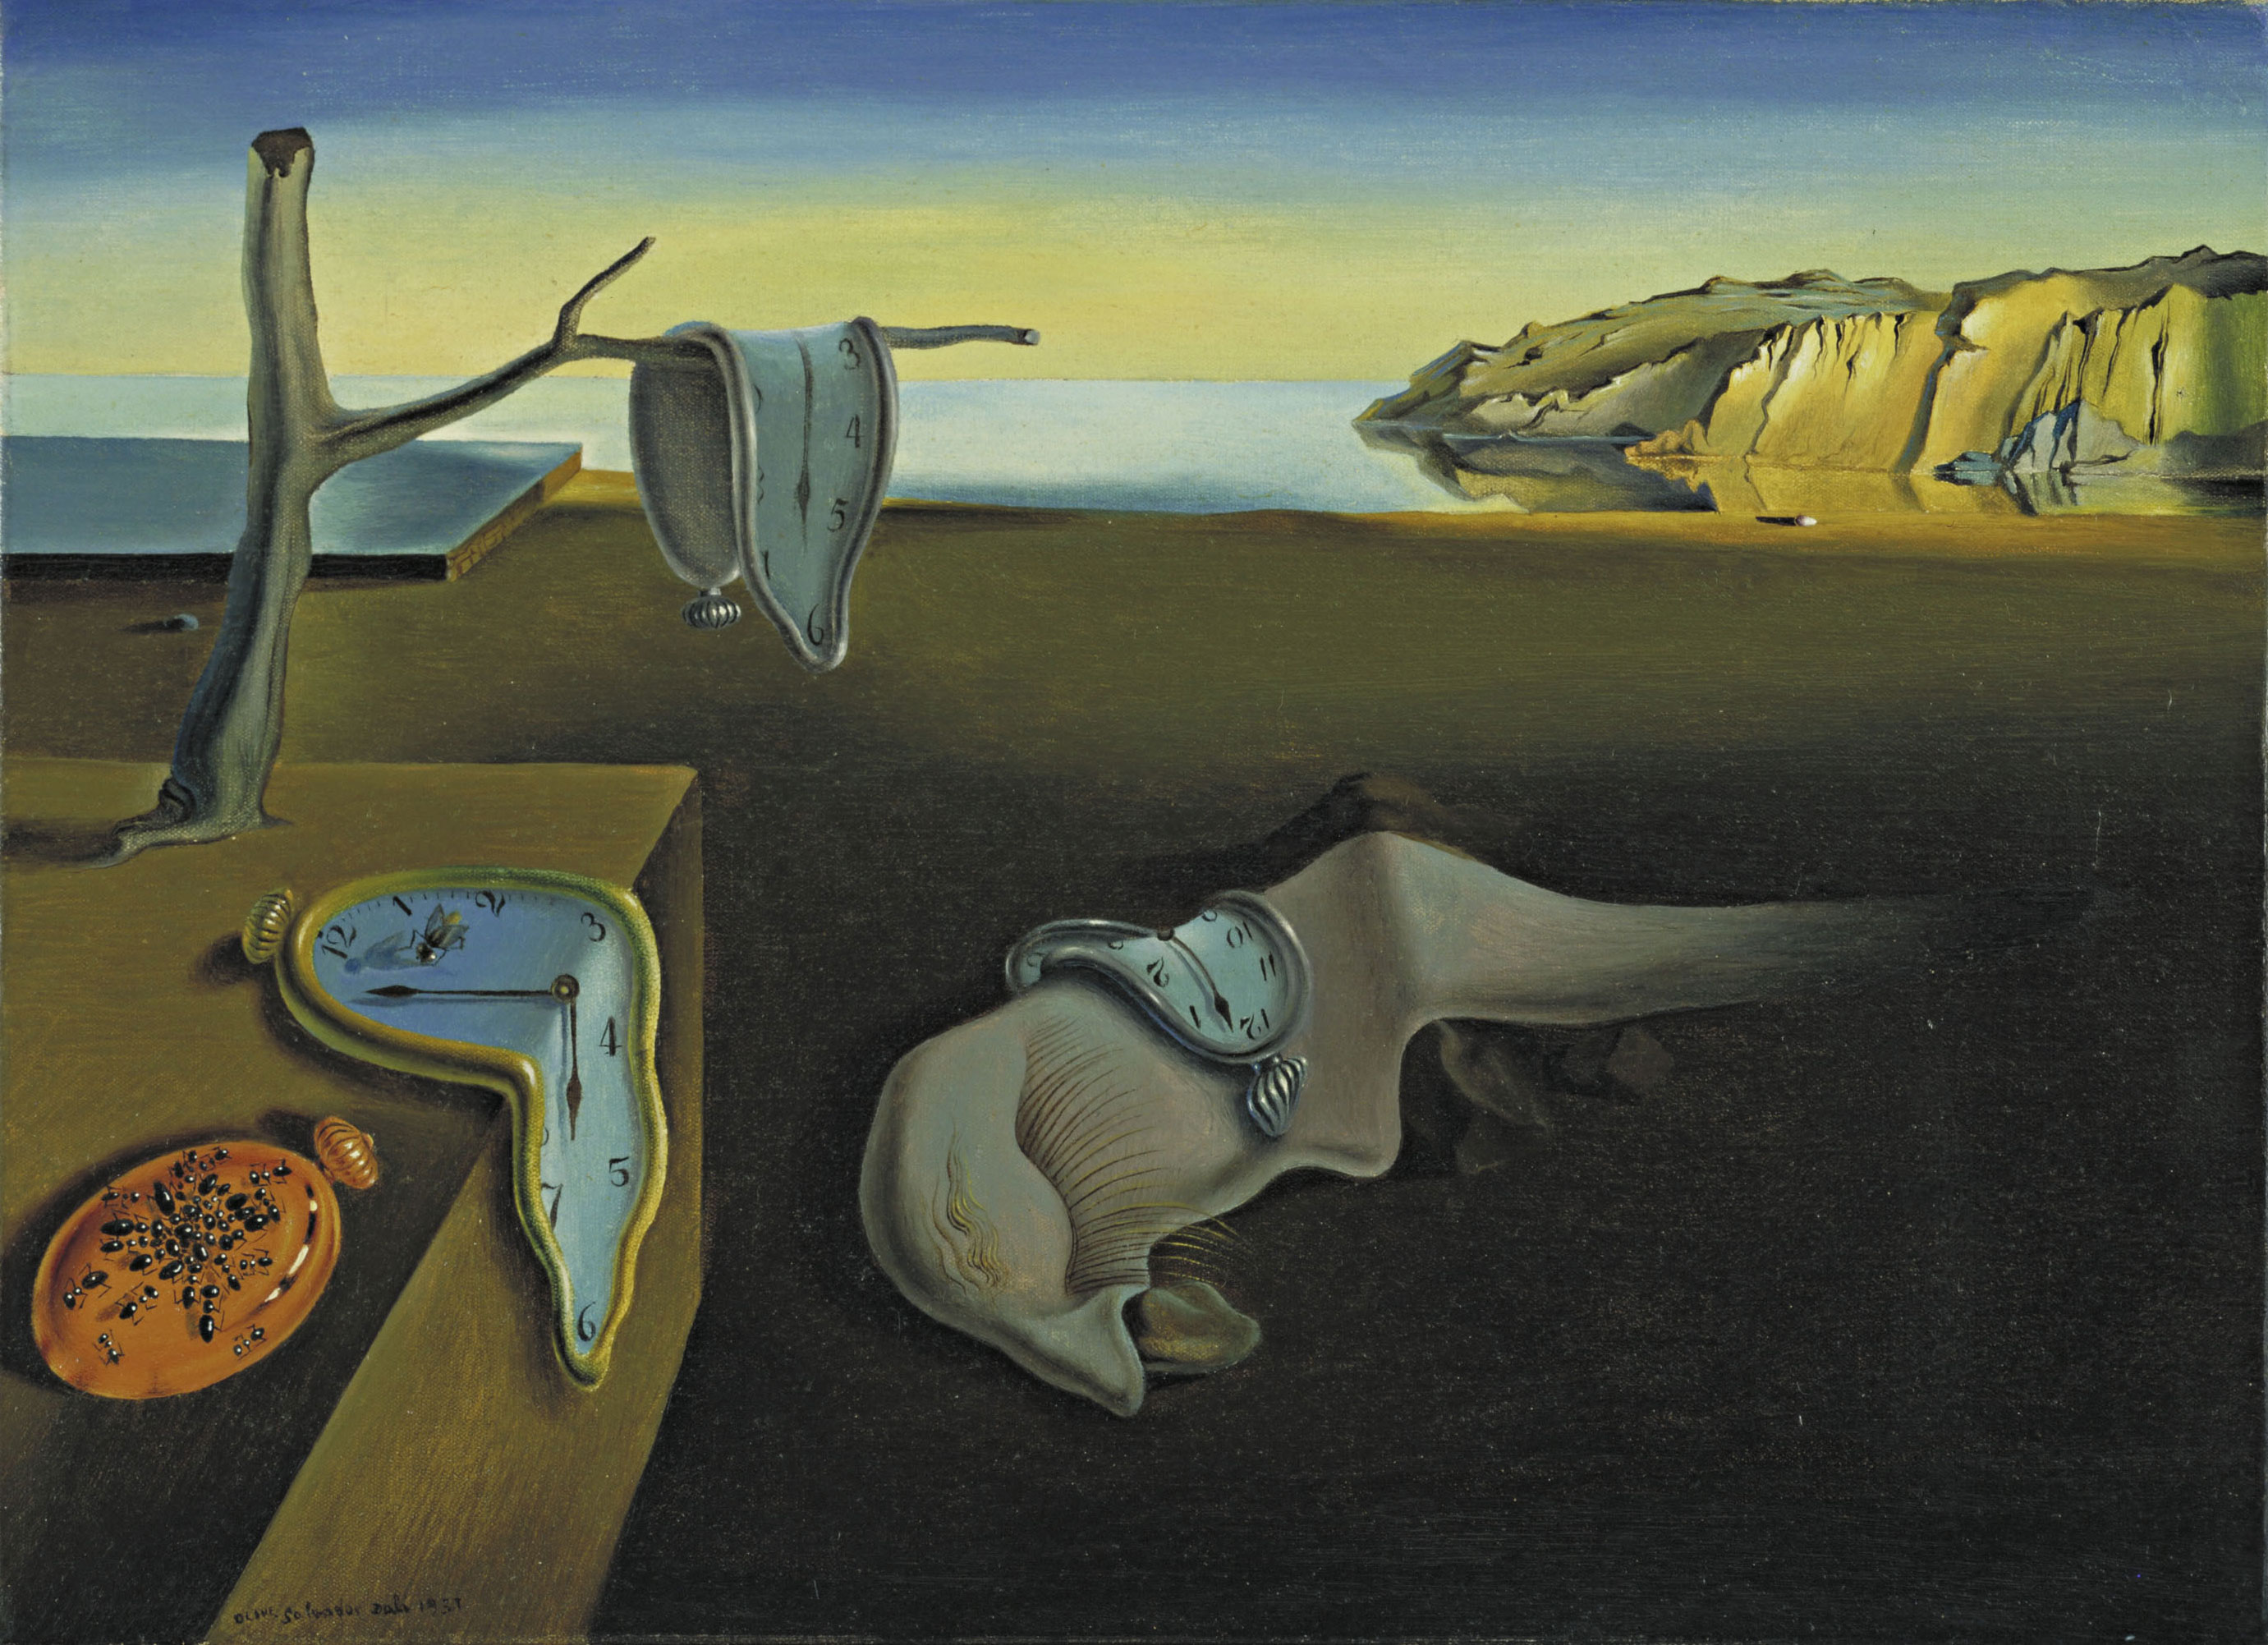 article on the subject of surrealism